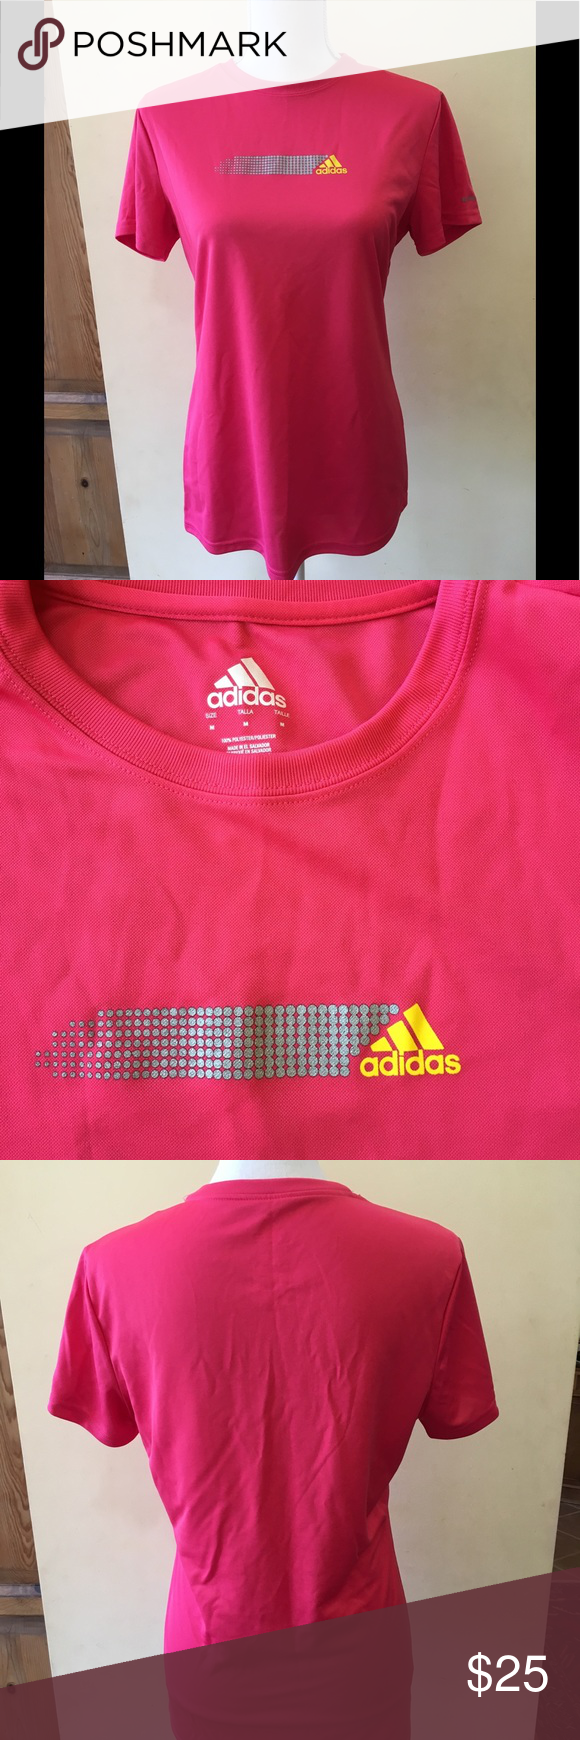 Adidas Active 360 Shirt Adidas Hot pink ladies' Active 360